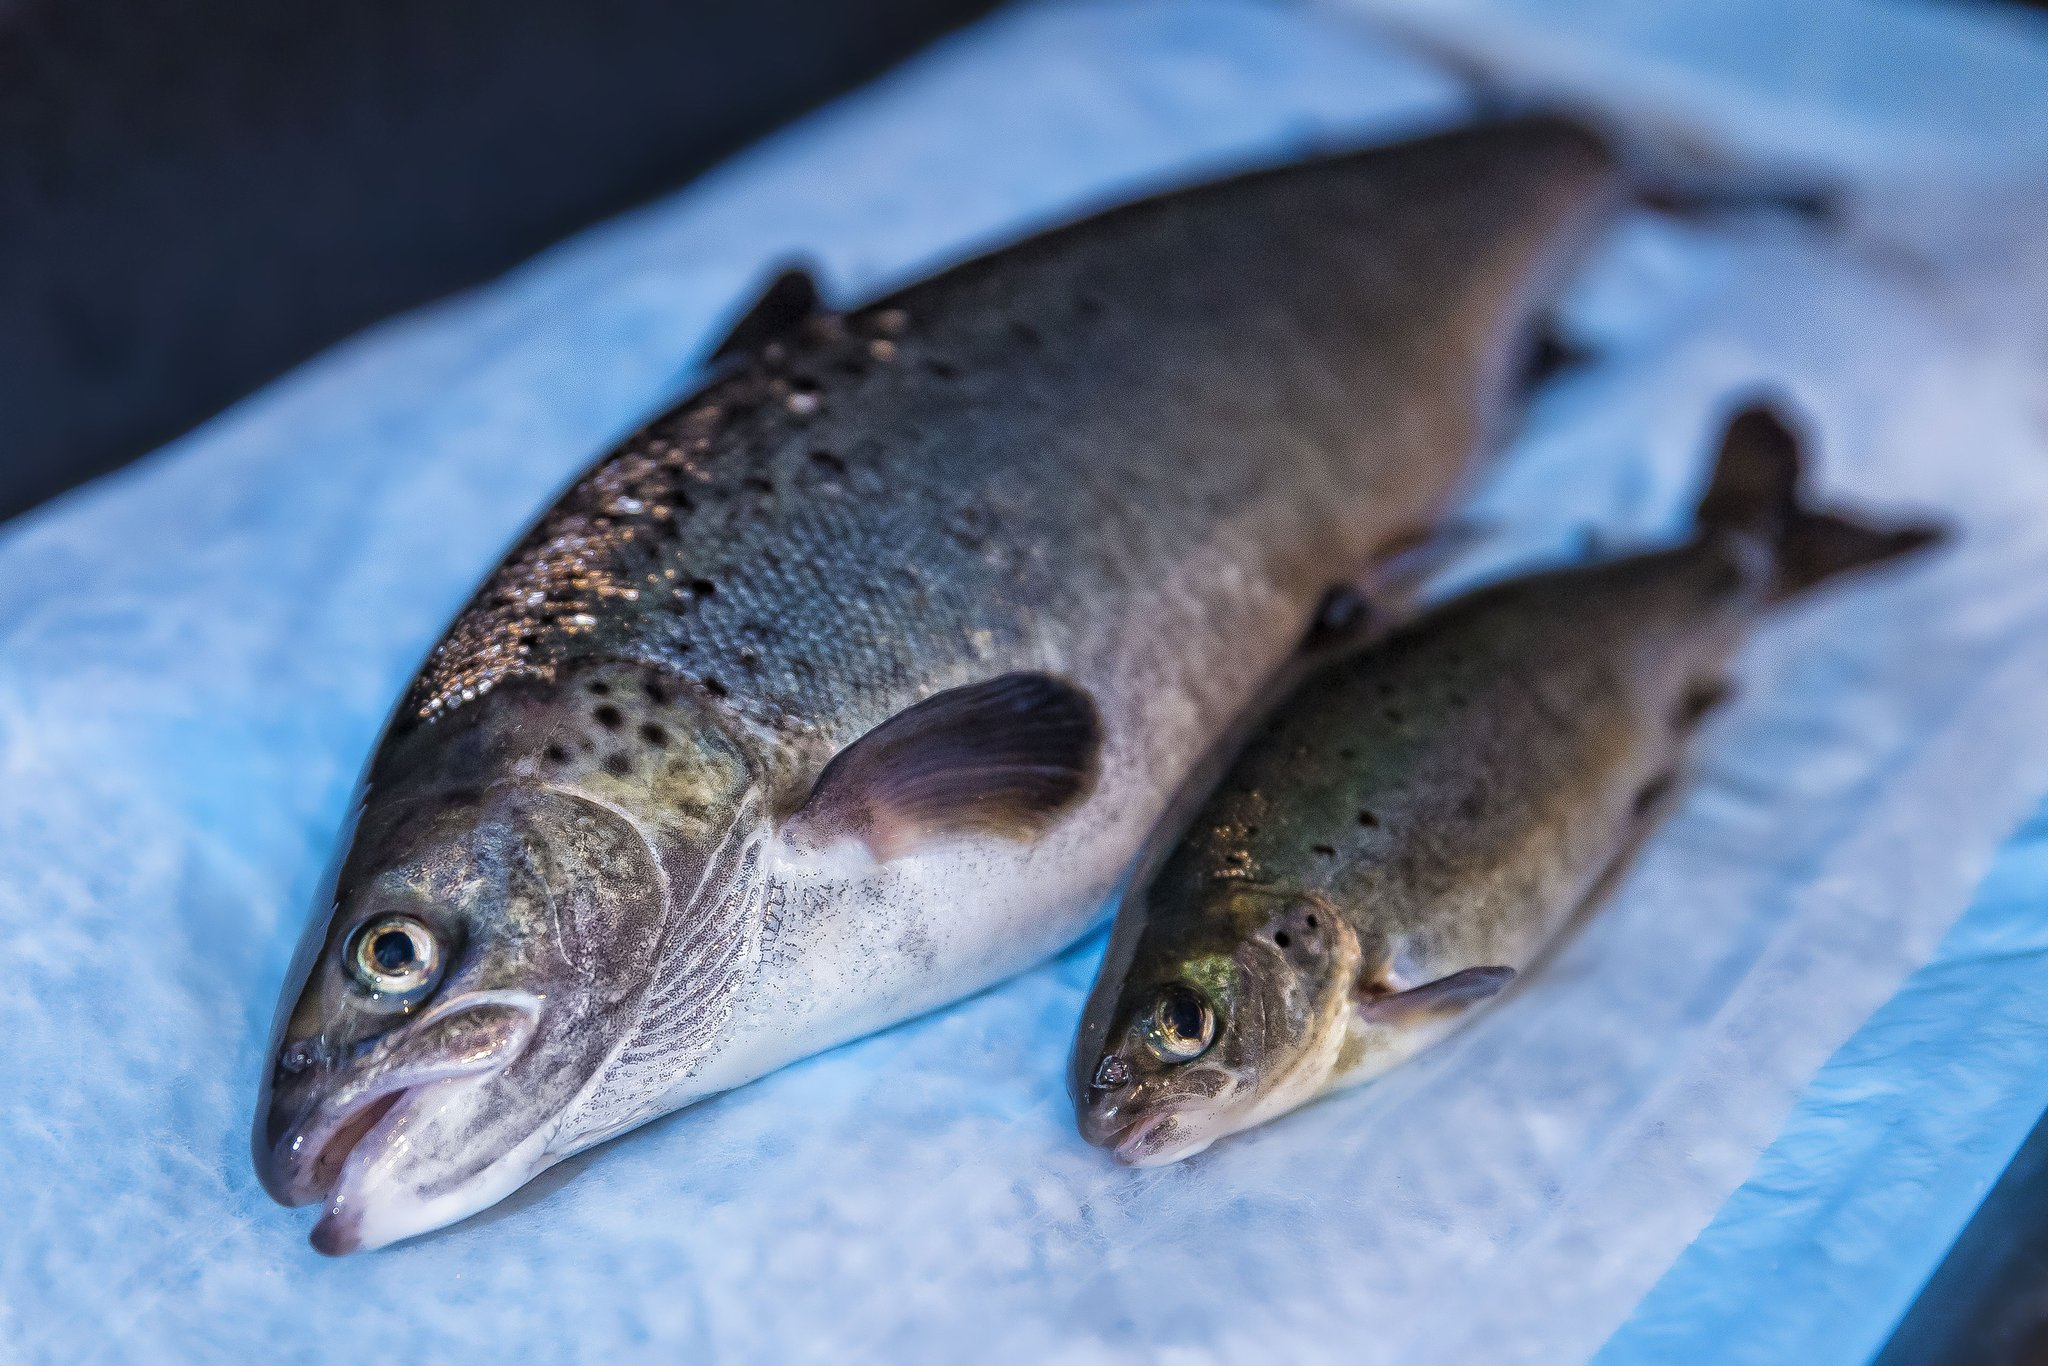 ... Fish Feed Into Edible Protein, They Offer A Potential Low Cost Solution  For Nourishing Not Only Affluent Consumers In North America But Hungry  People In ...